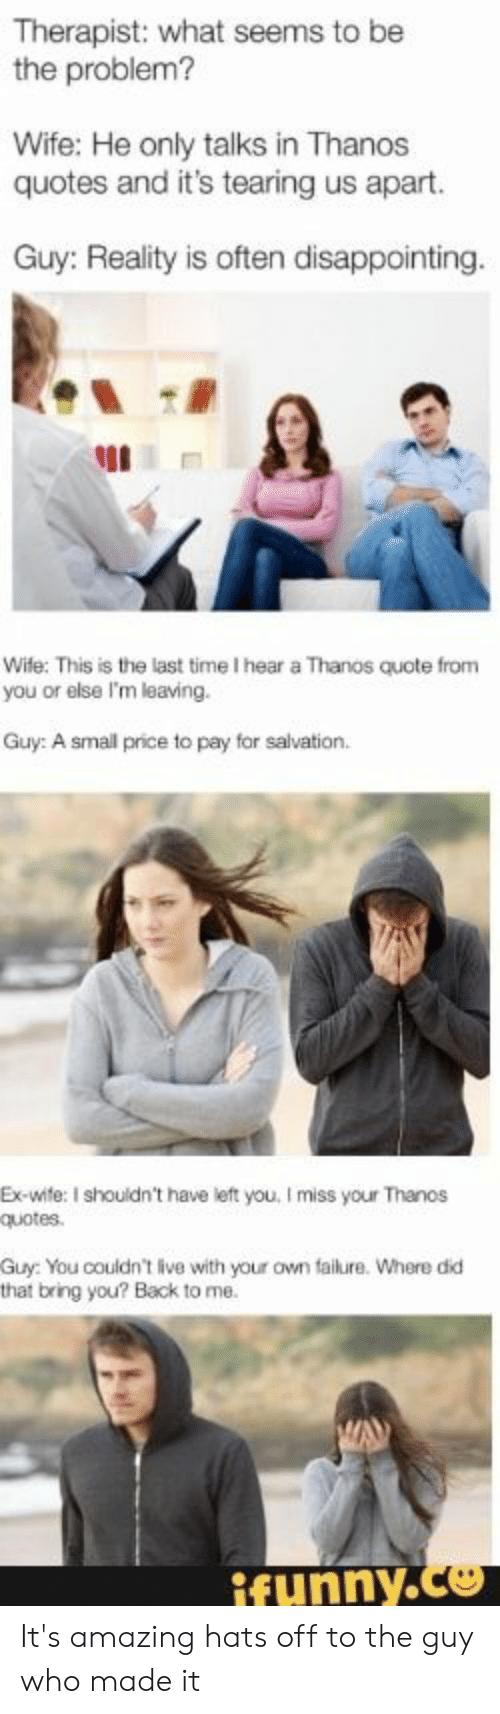 tearing: Therapist: what seems to be  the problem?  Wife: He only talks in Thanos  quotes and it's tearing us apart.  Guy: Reality is often disappointing.  Wife: This is the last time I hear a Thanos quote from  you or else I'm leaving.  Guy: A small price to pay for salvation.  Ex-wite: I shouldn't have left you, I miss your Thanos  quotes  Guy: You couldn't live with your own failure. Where did  that bring you? Back to me.  ifunny.co It's amazing hats off to the guy who made it